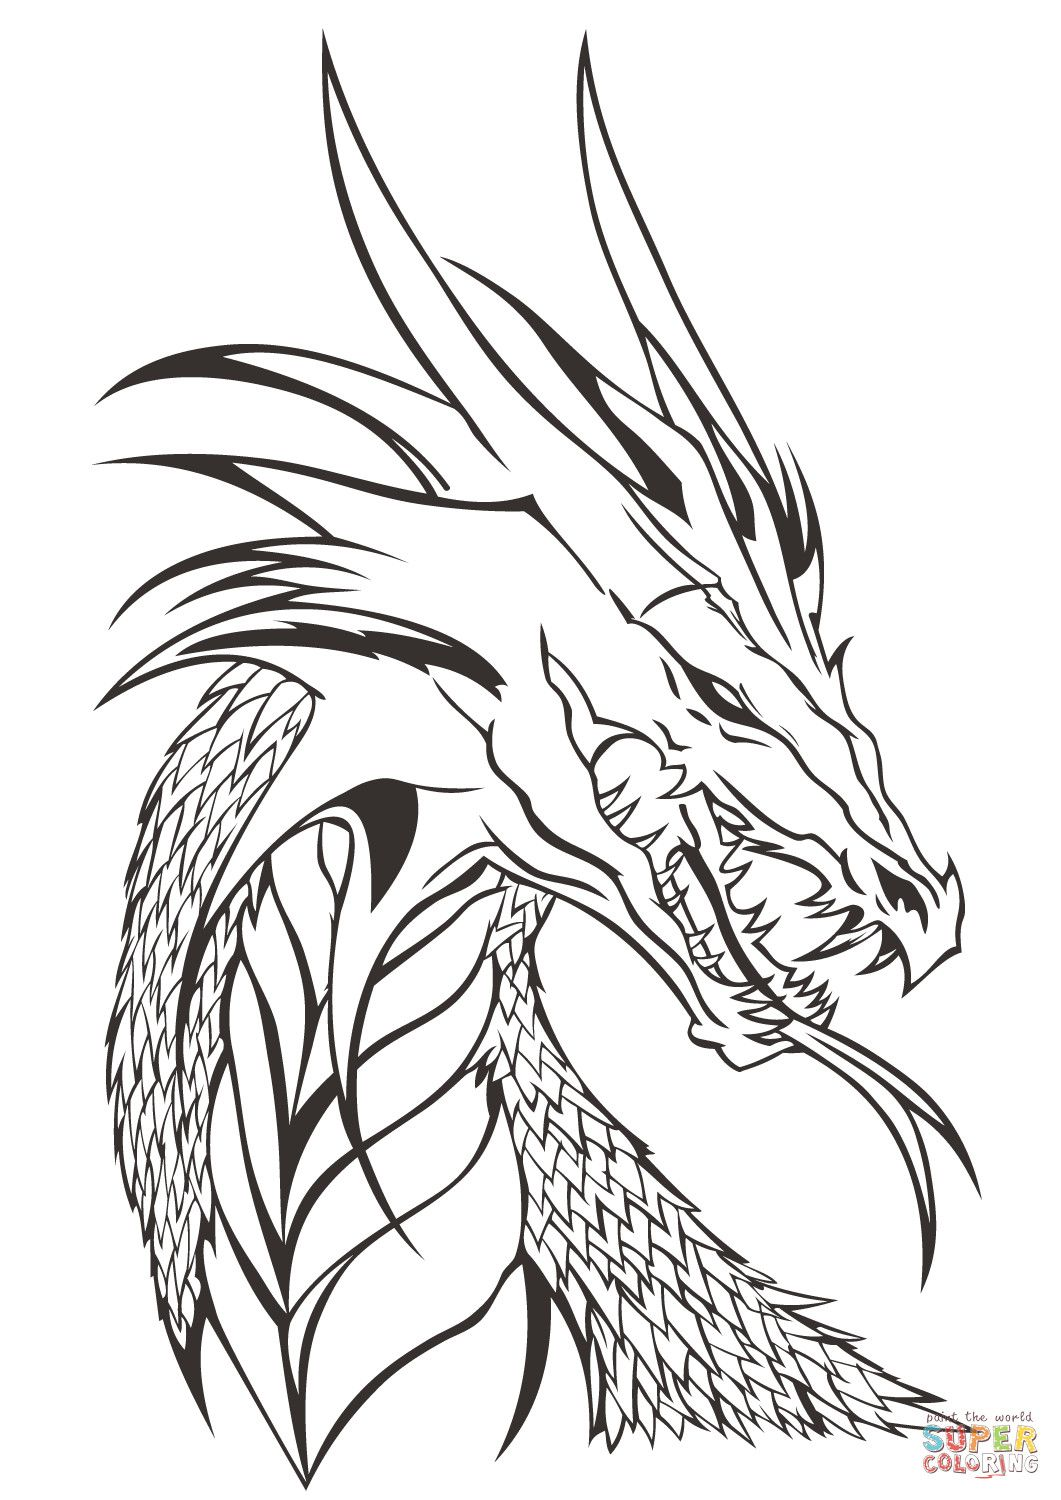 Dragon Head Coloring Page Youngandtae Com In 2020 Skull Coloring Pages Realistic Dragon Dragon Coloring Page